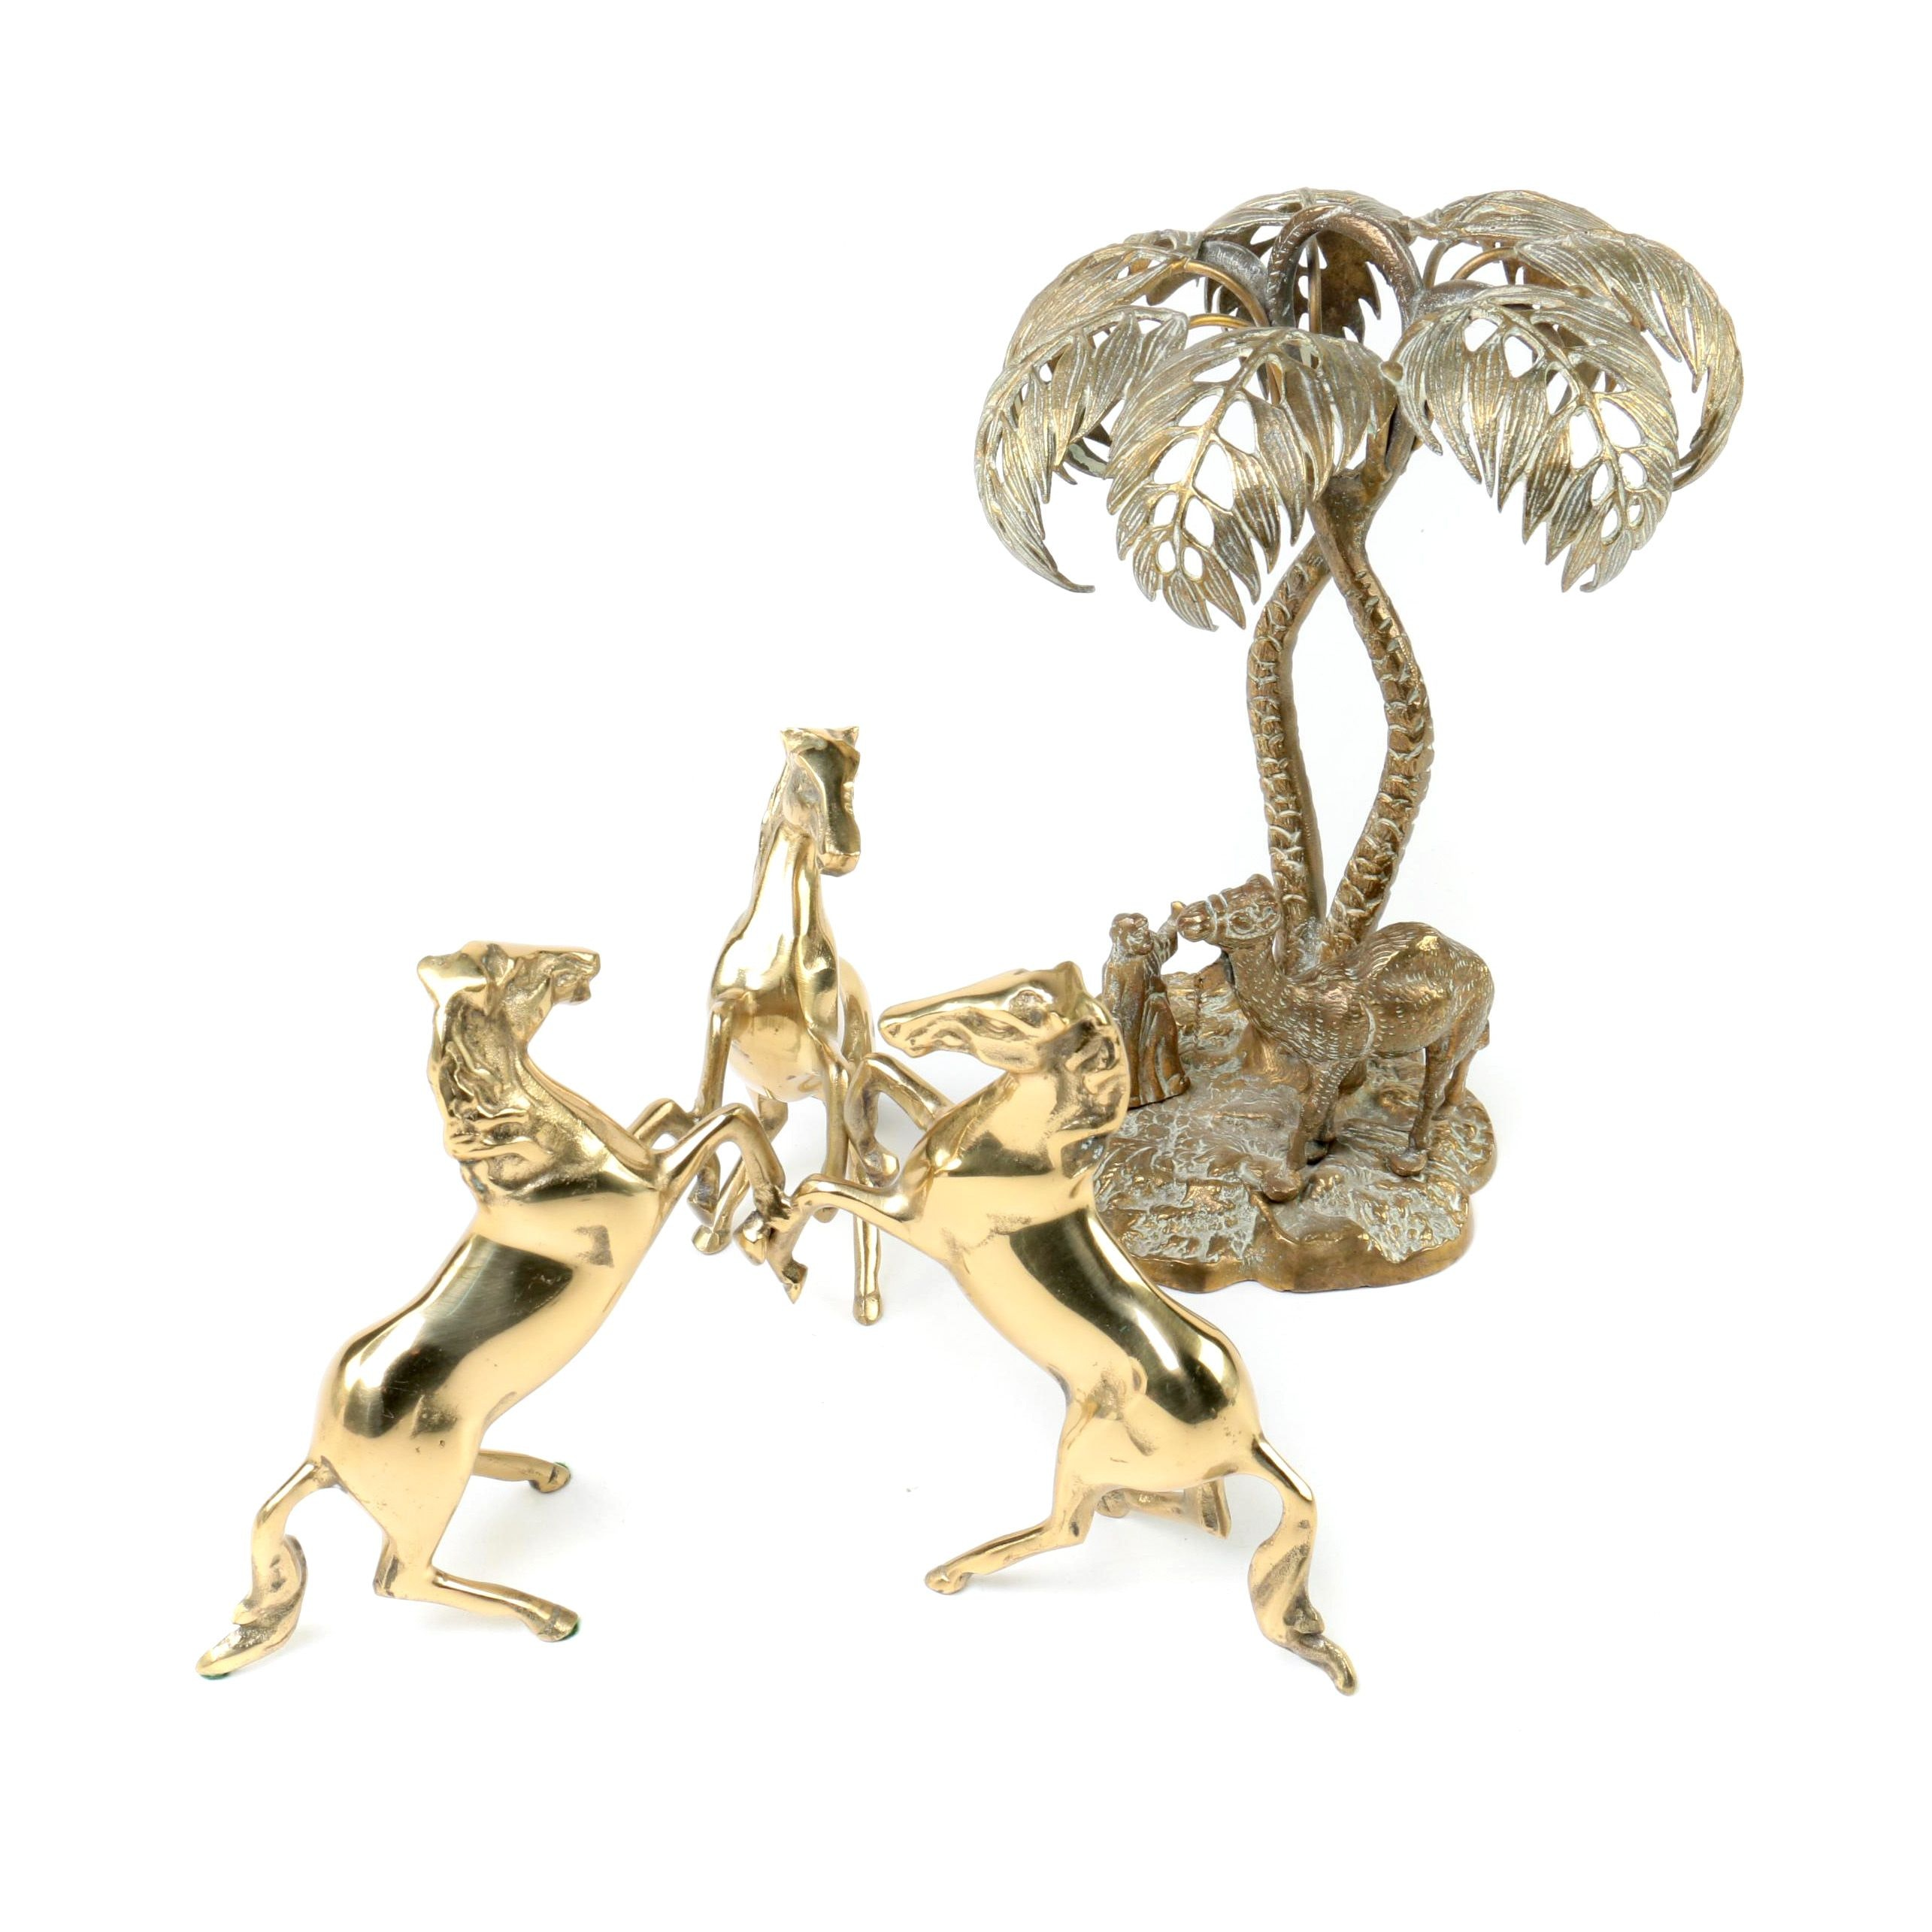 Brass Horse and Camel Figurines